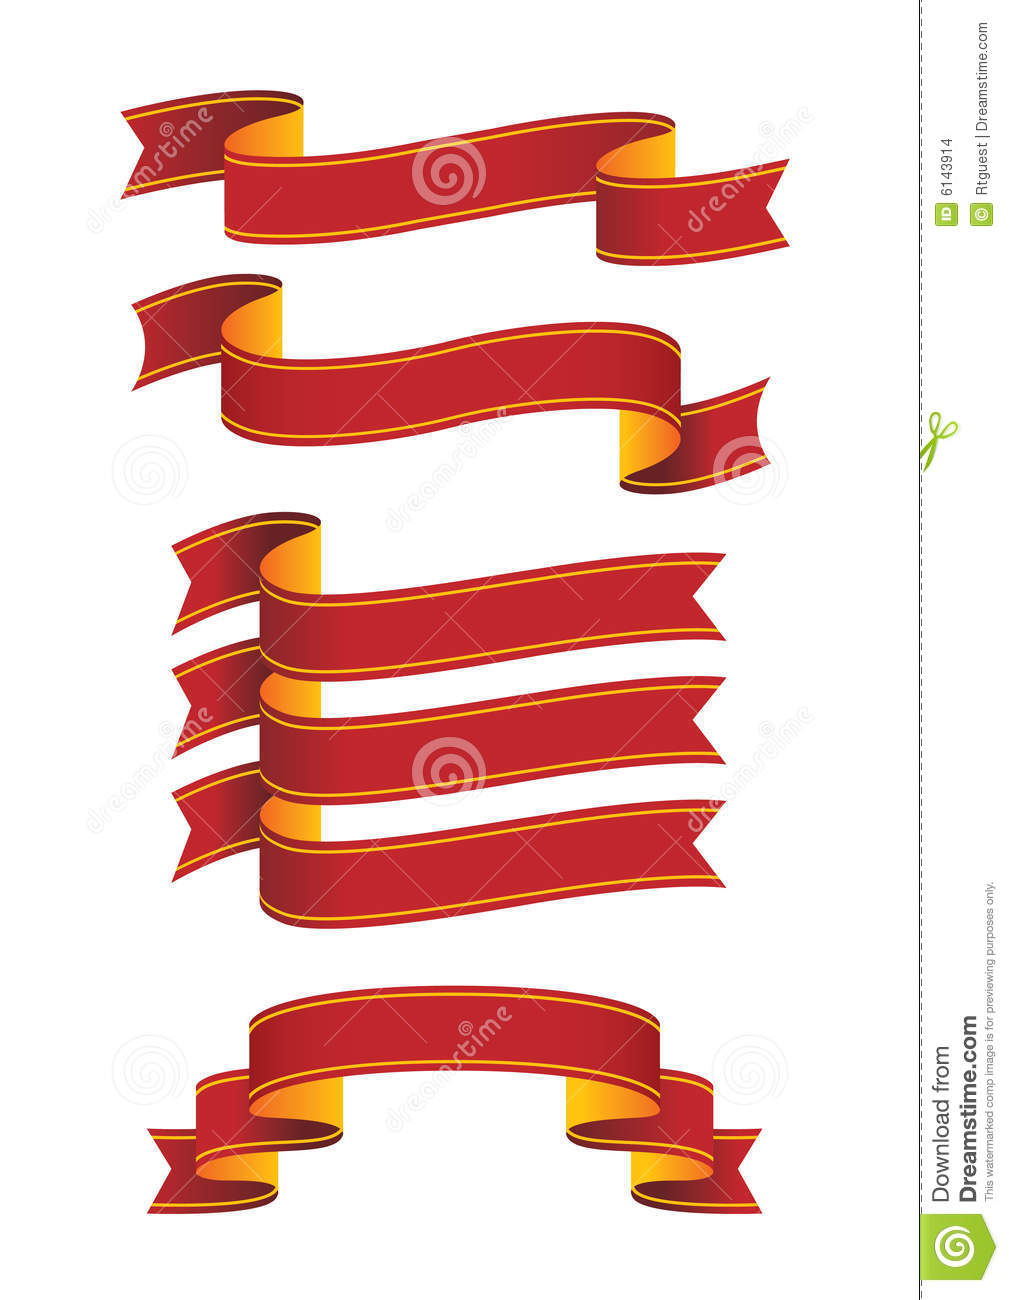 scrolls and banners stock images